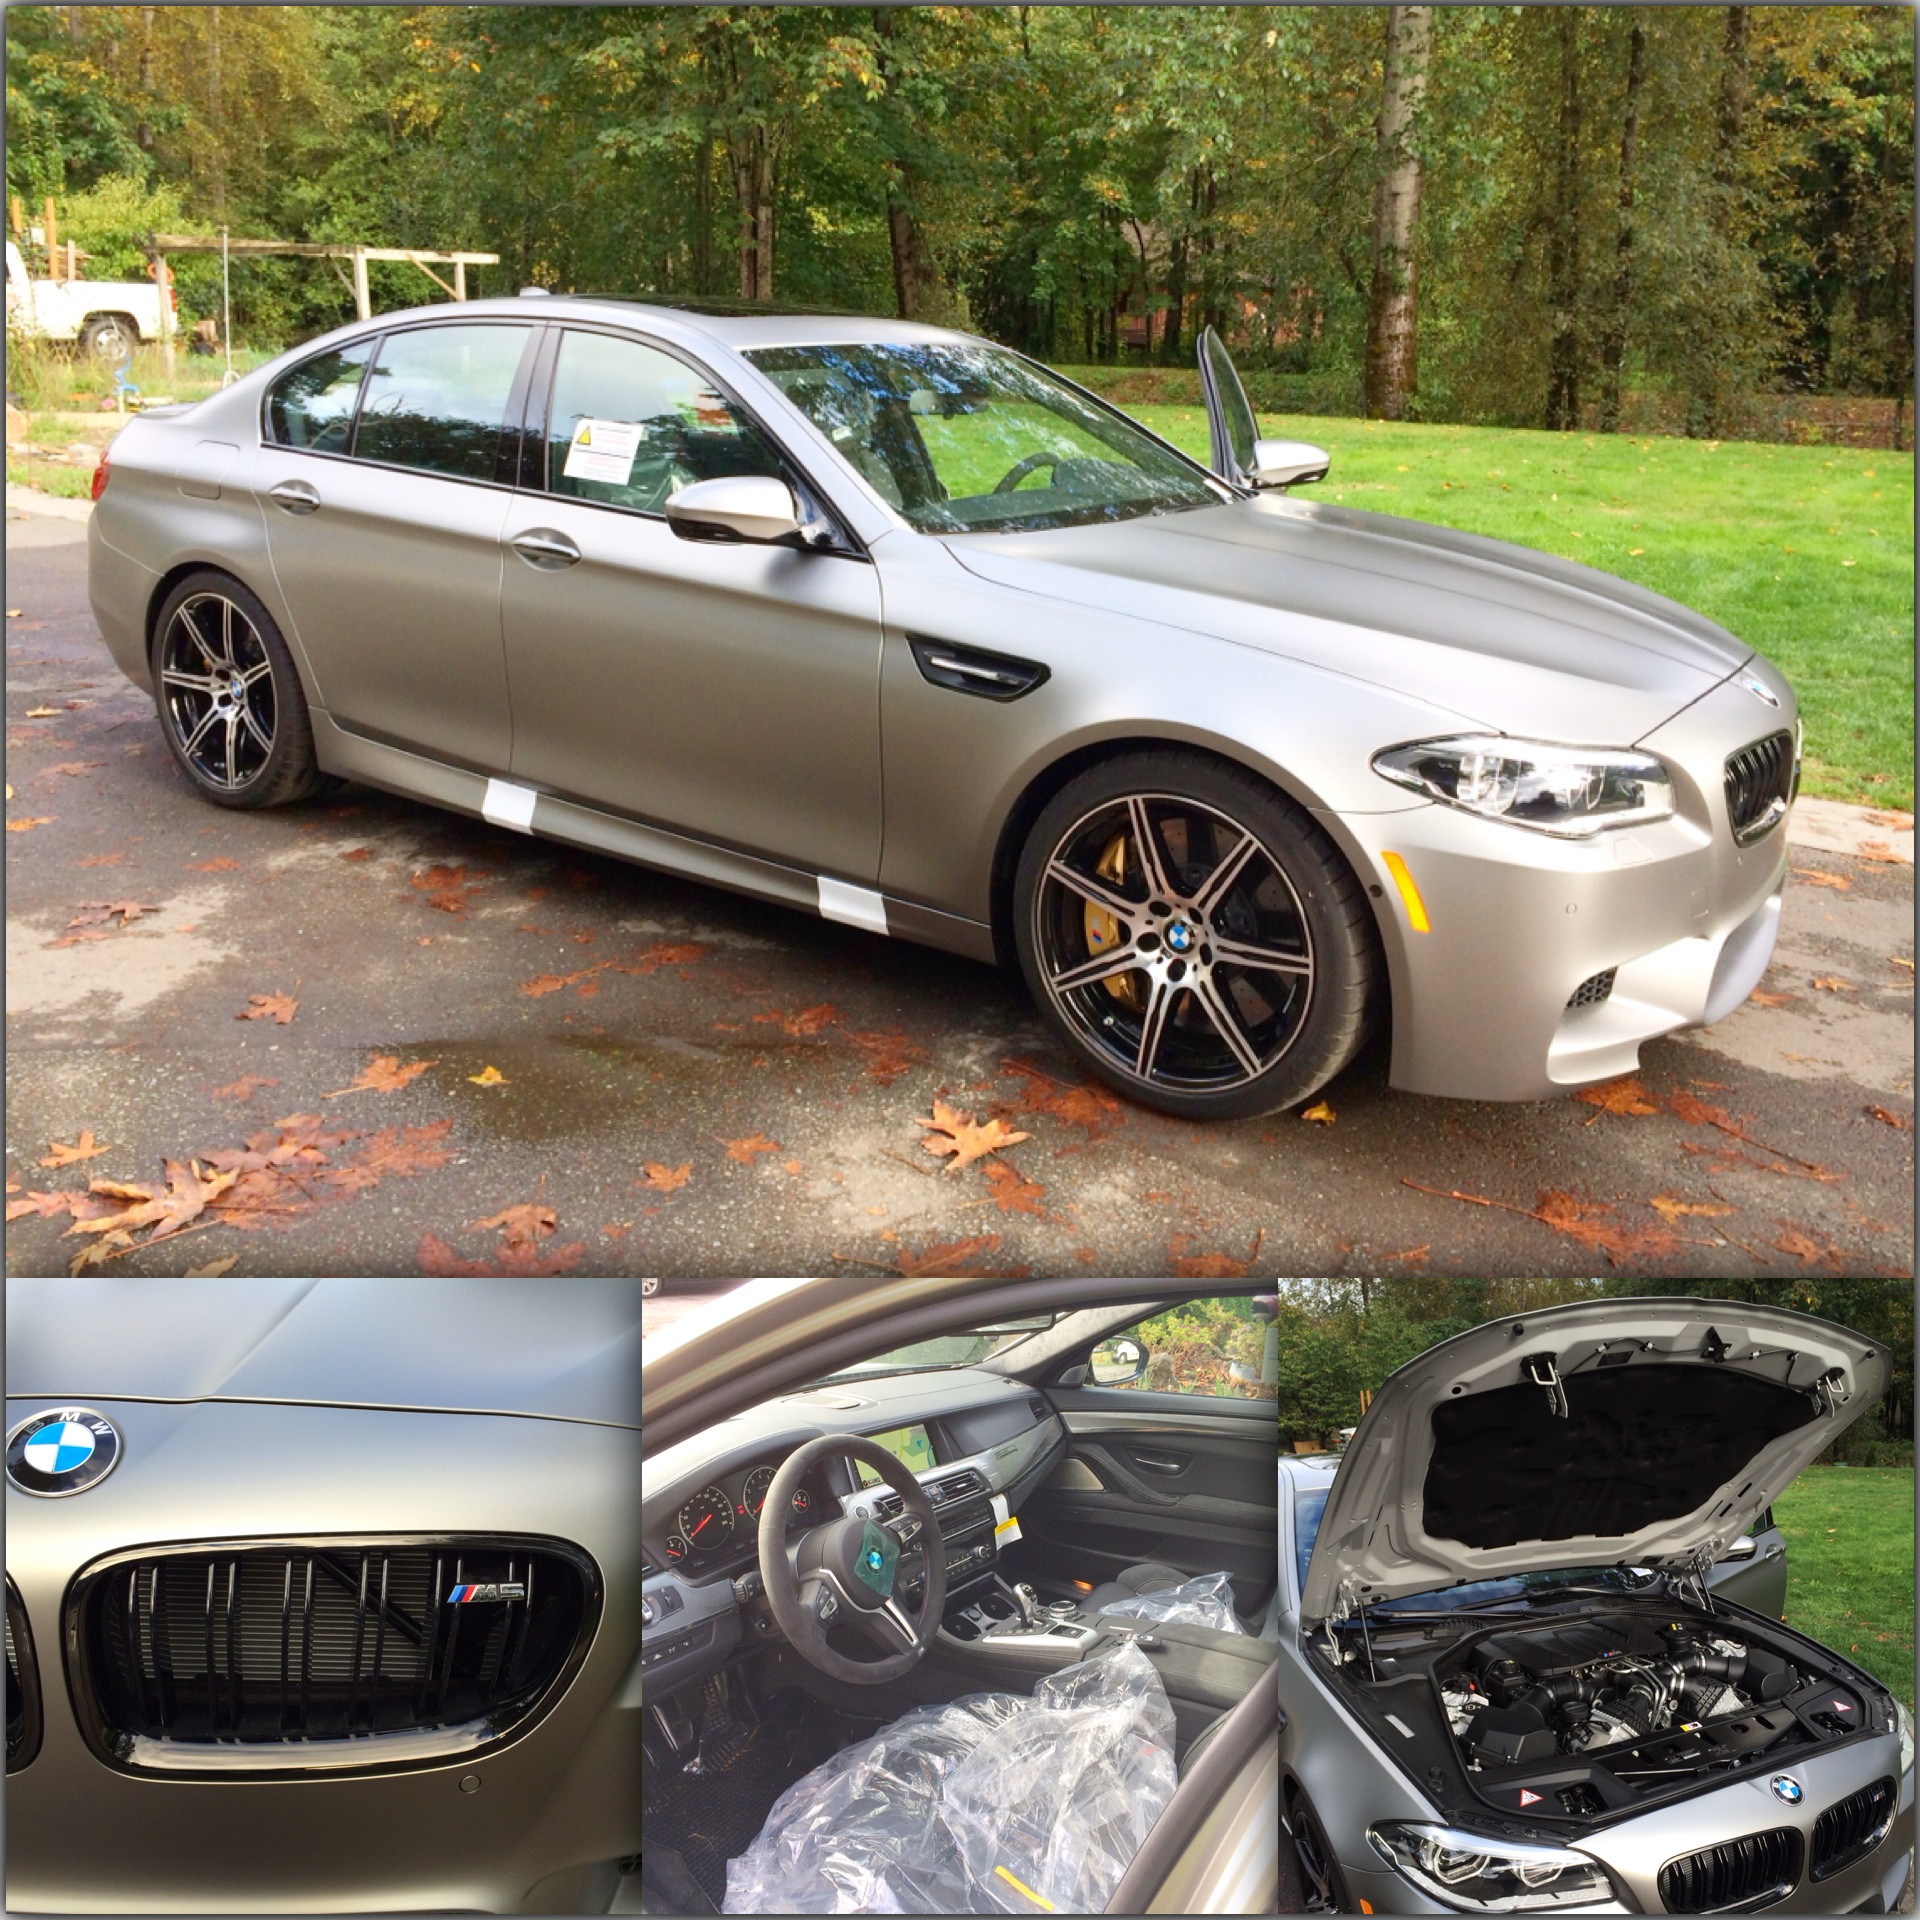 F10 For Sale Extremely Rare 1 Of 29 BMW M5 Jahre Editions